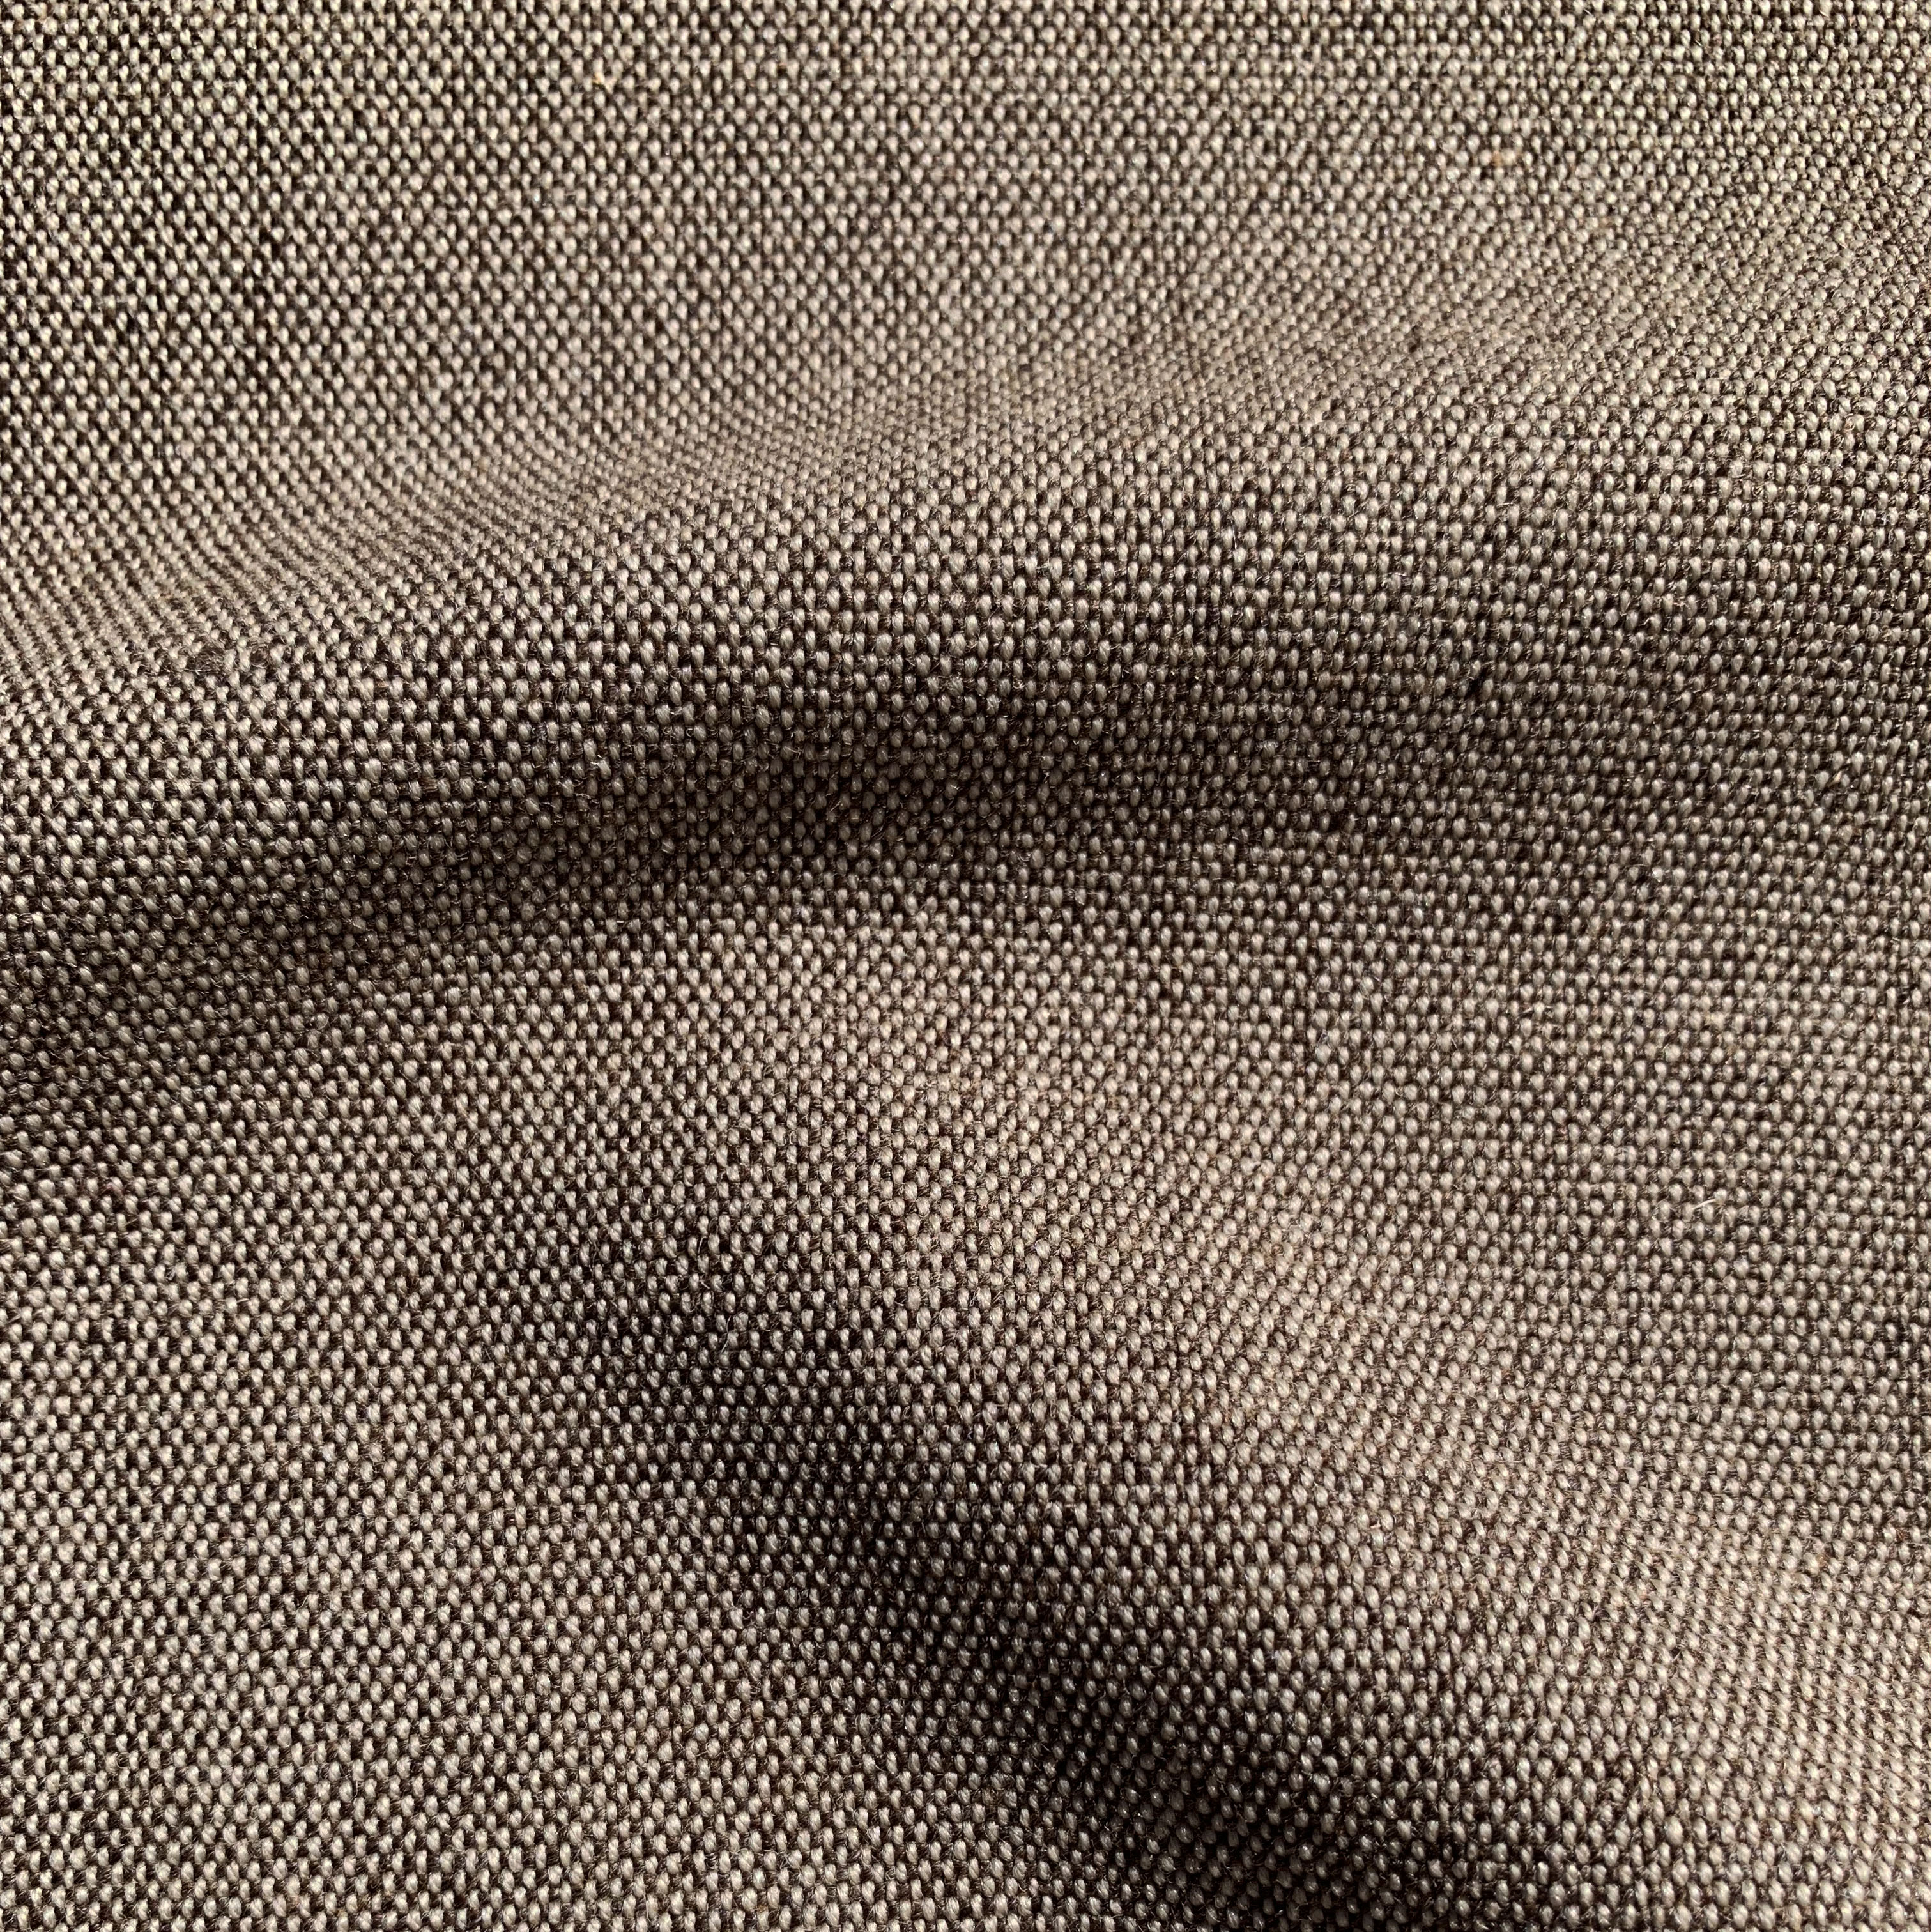 Nick fabric from the Sustainble Reunion range by Sustainable Living Fabrics